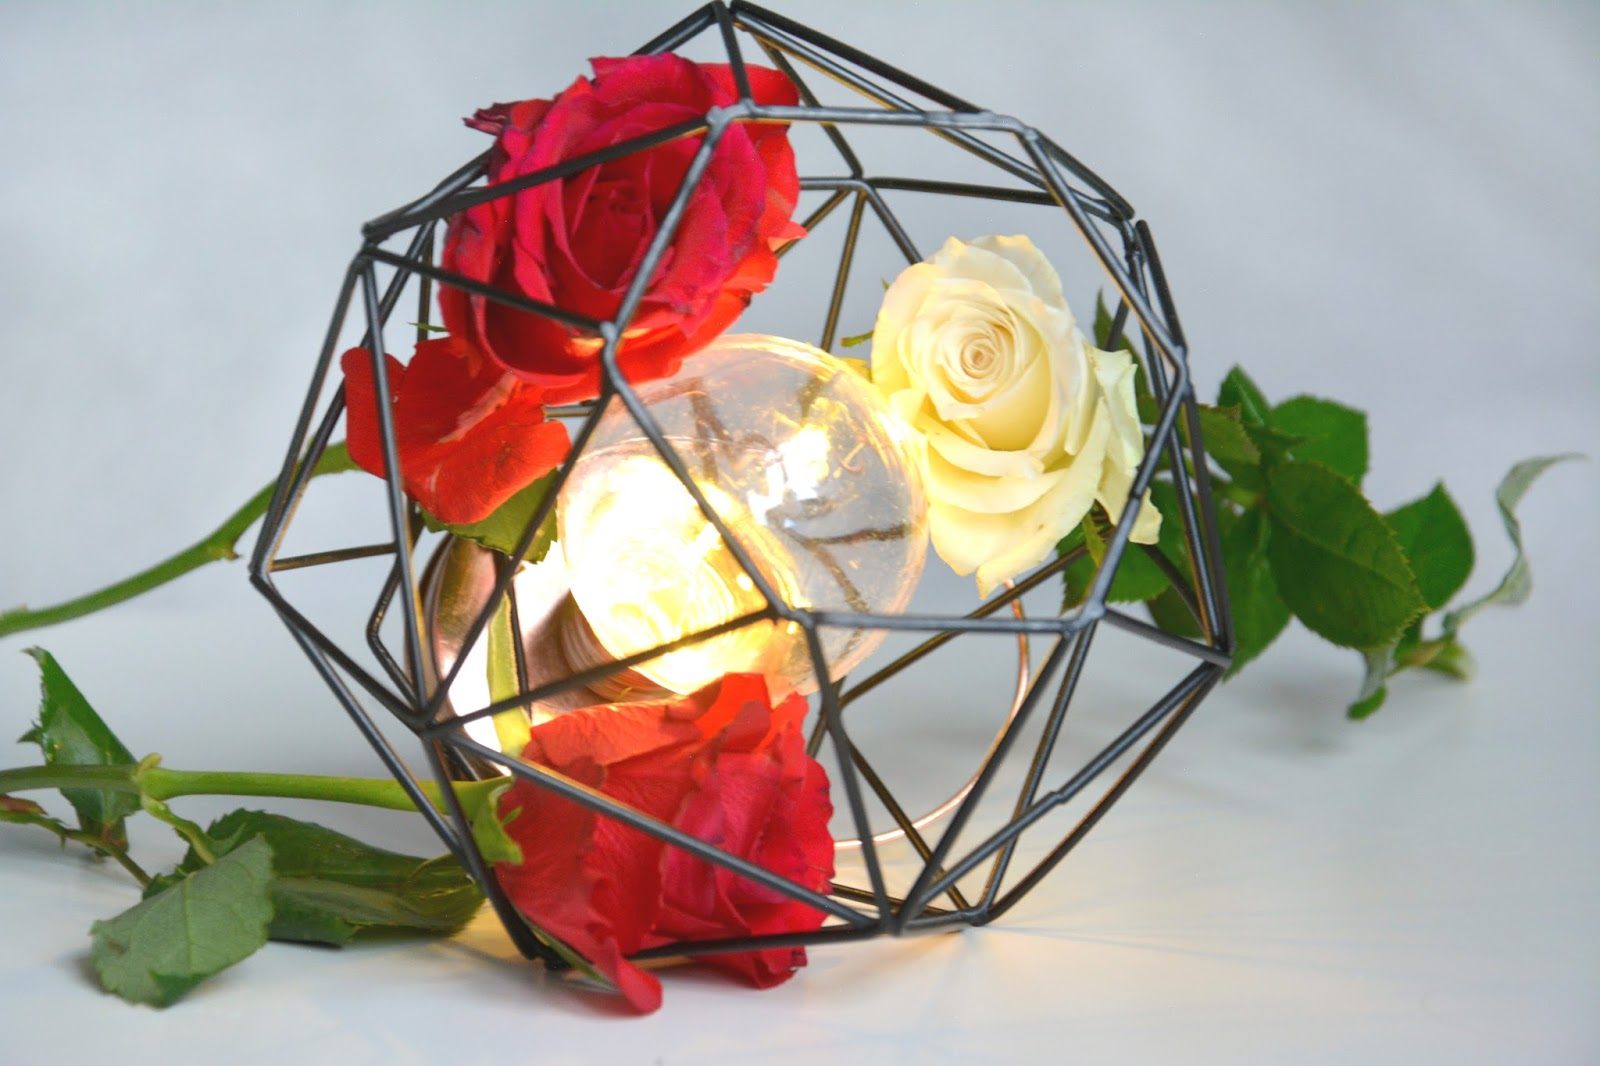 Primark Decorative Lightbulb; Fresh Roses